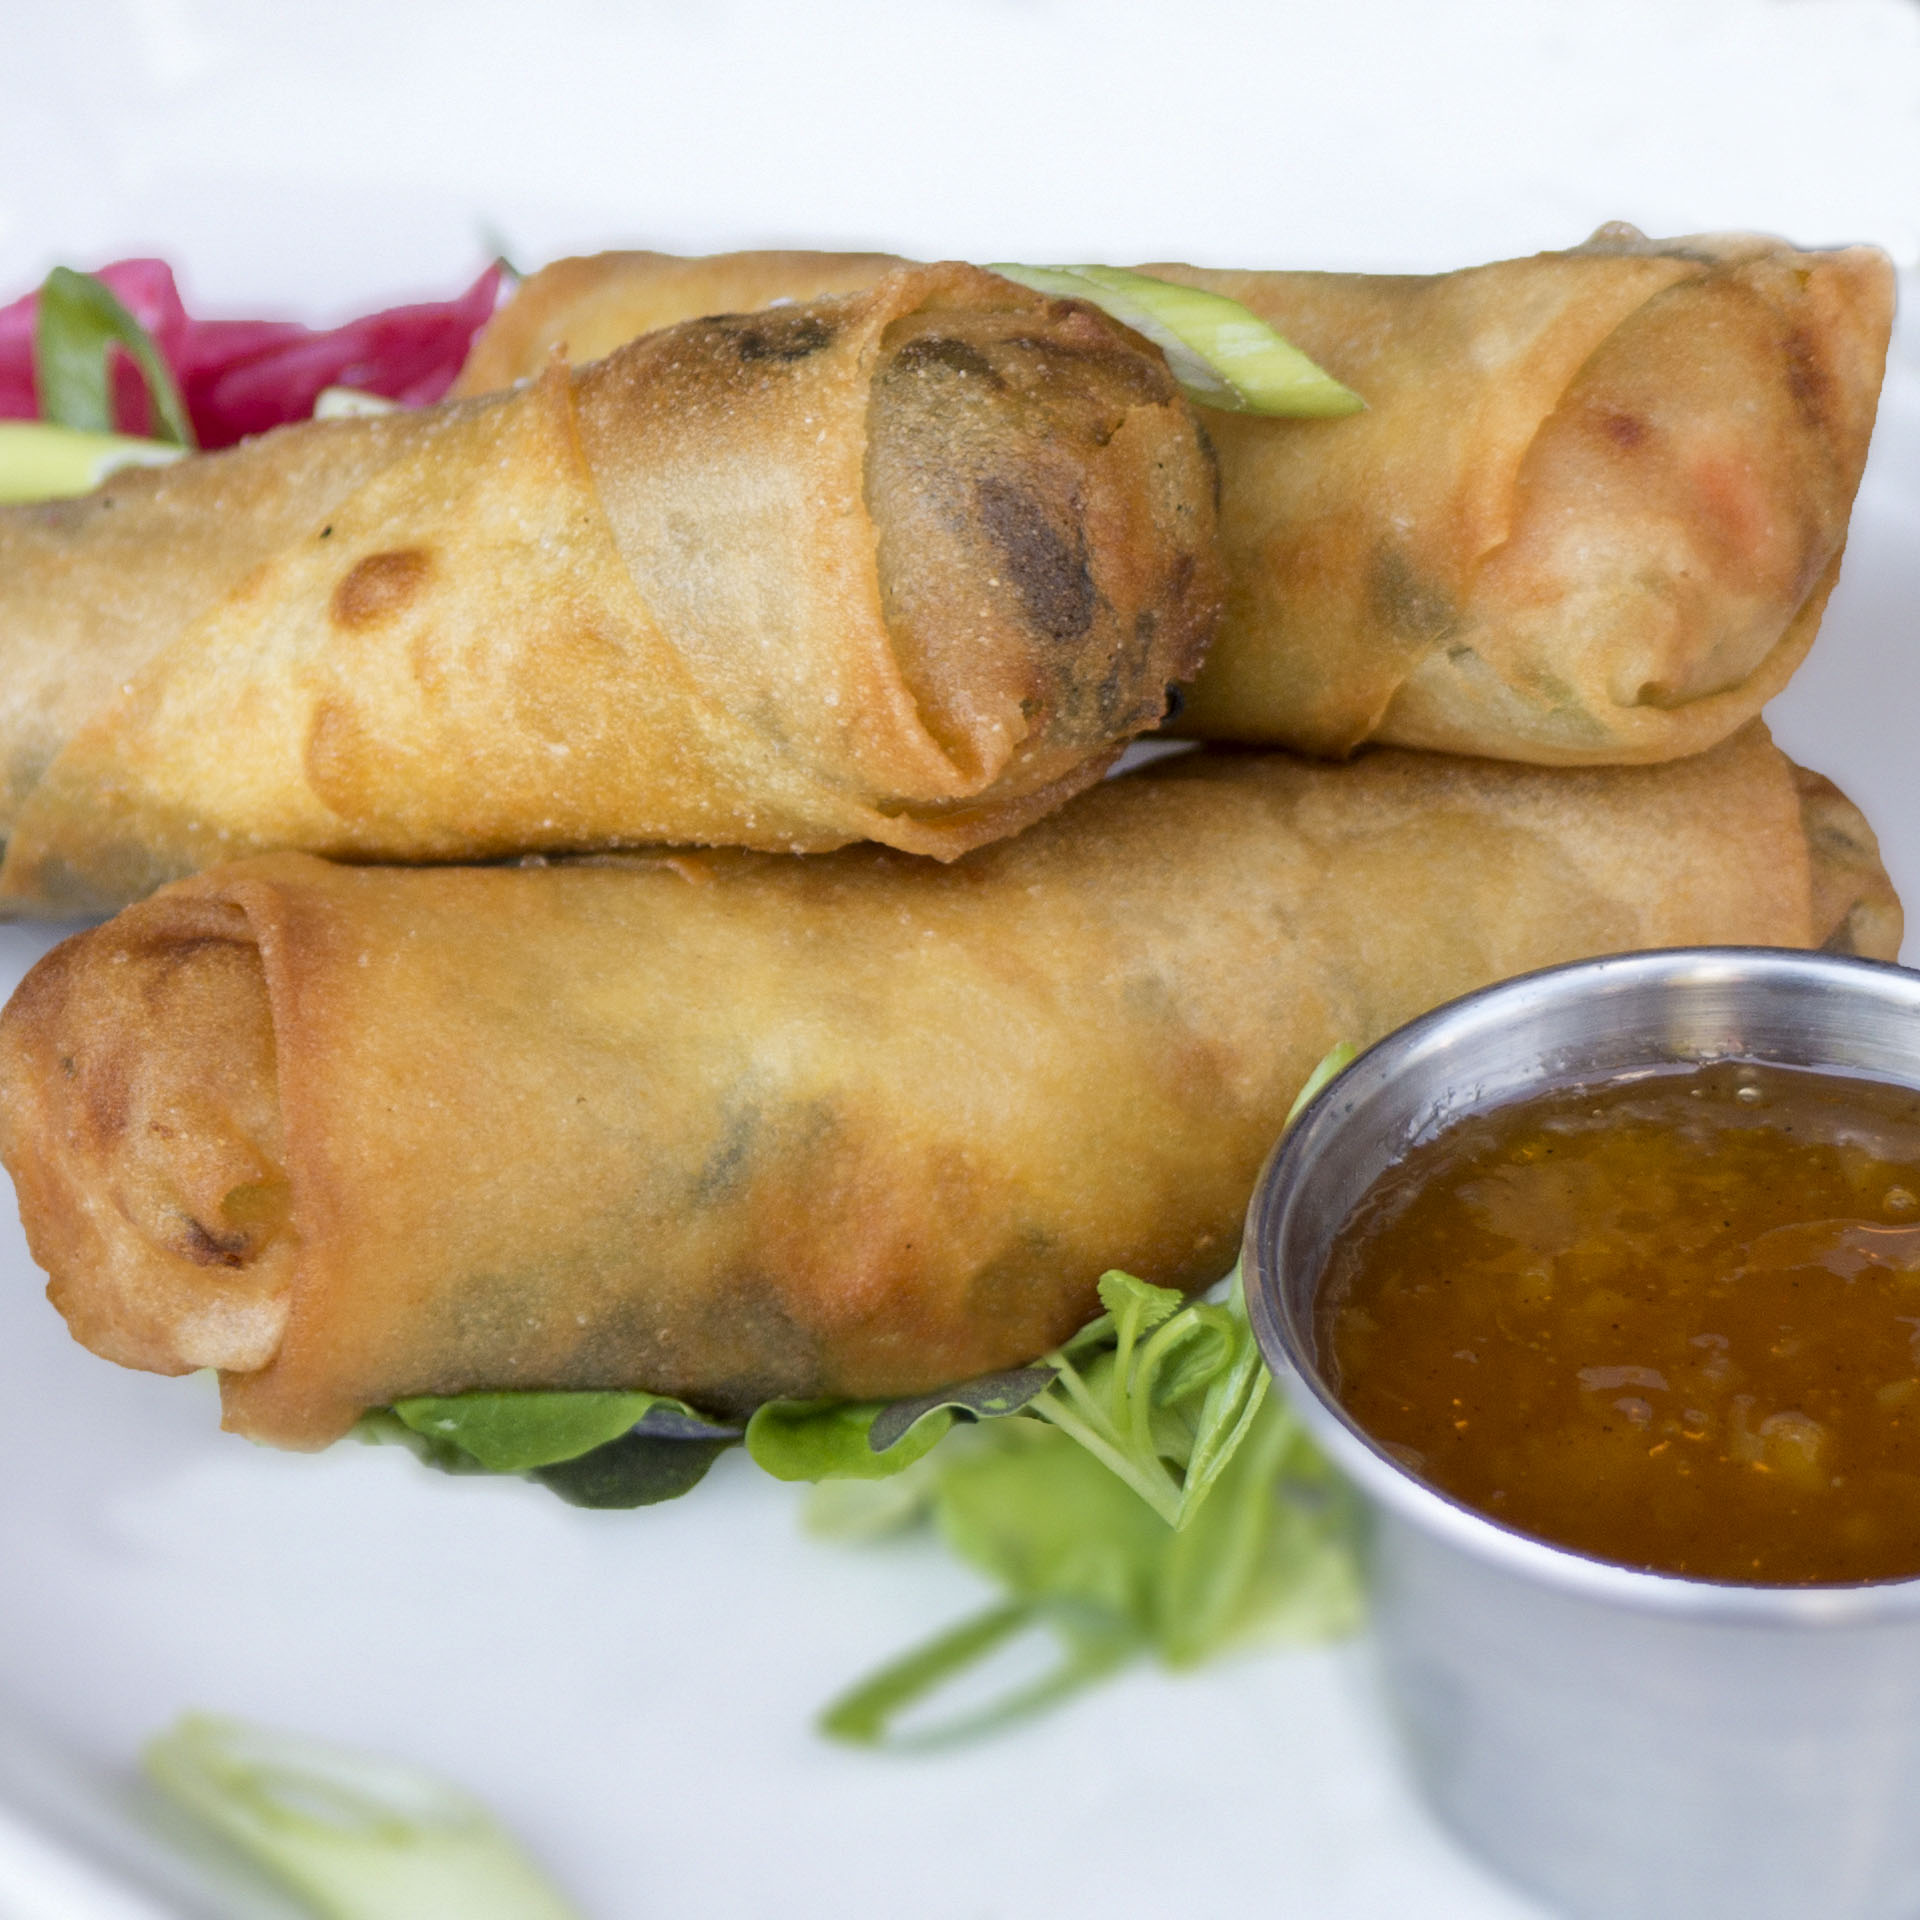 Spring rolls on top of greens with dipping suace